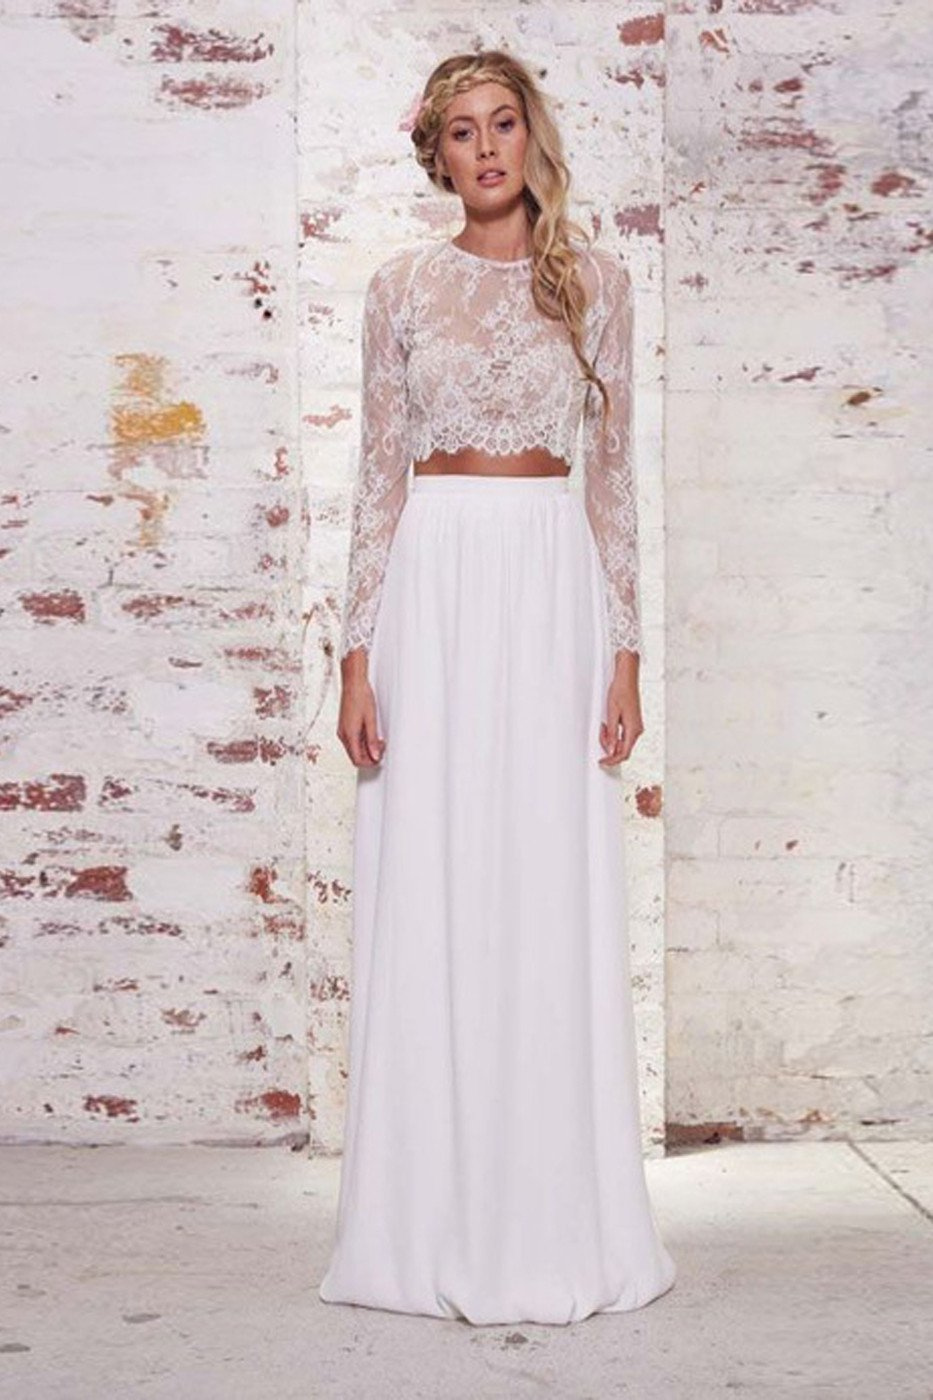 full swing glam white maxi skirt - shopluckyduck - 1 LAHHZJT